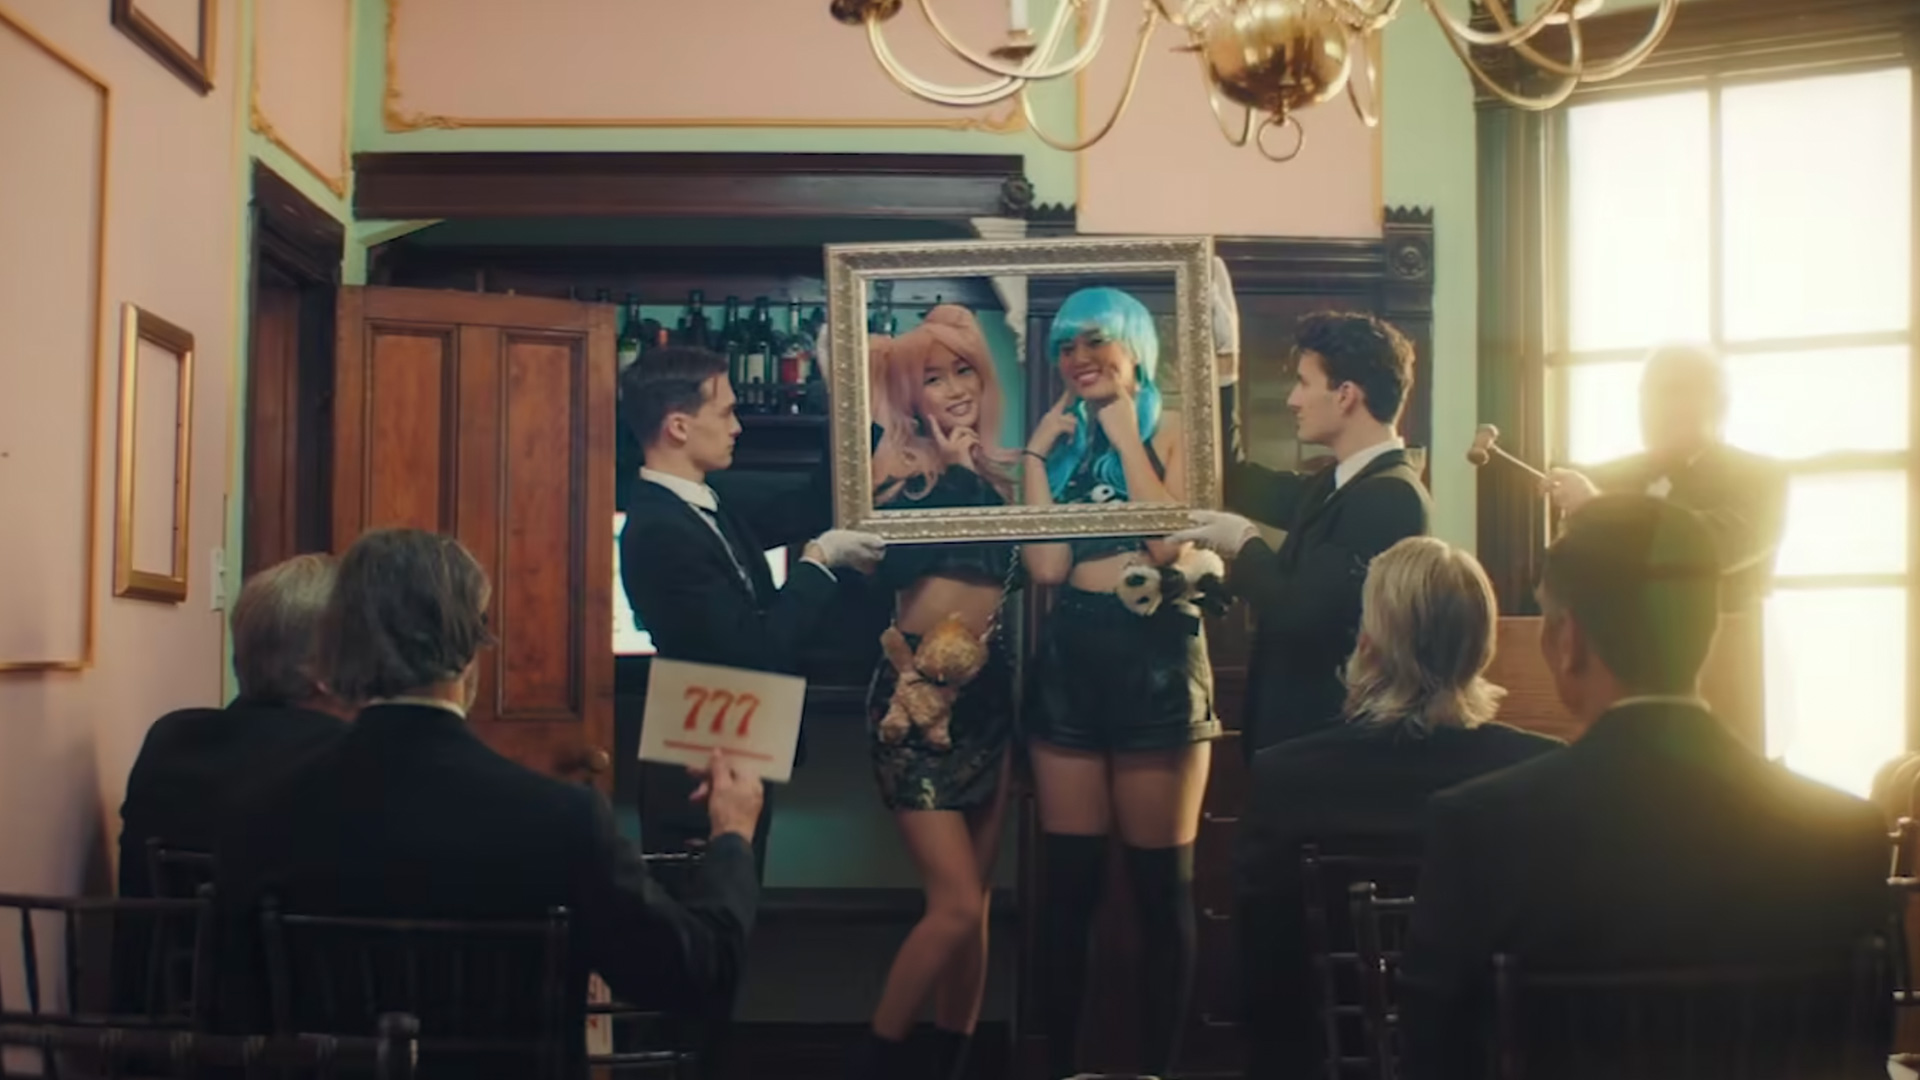 People in front of a room with colored wigs posing inside a gold picture frame